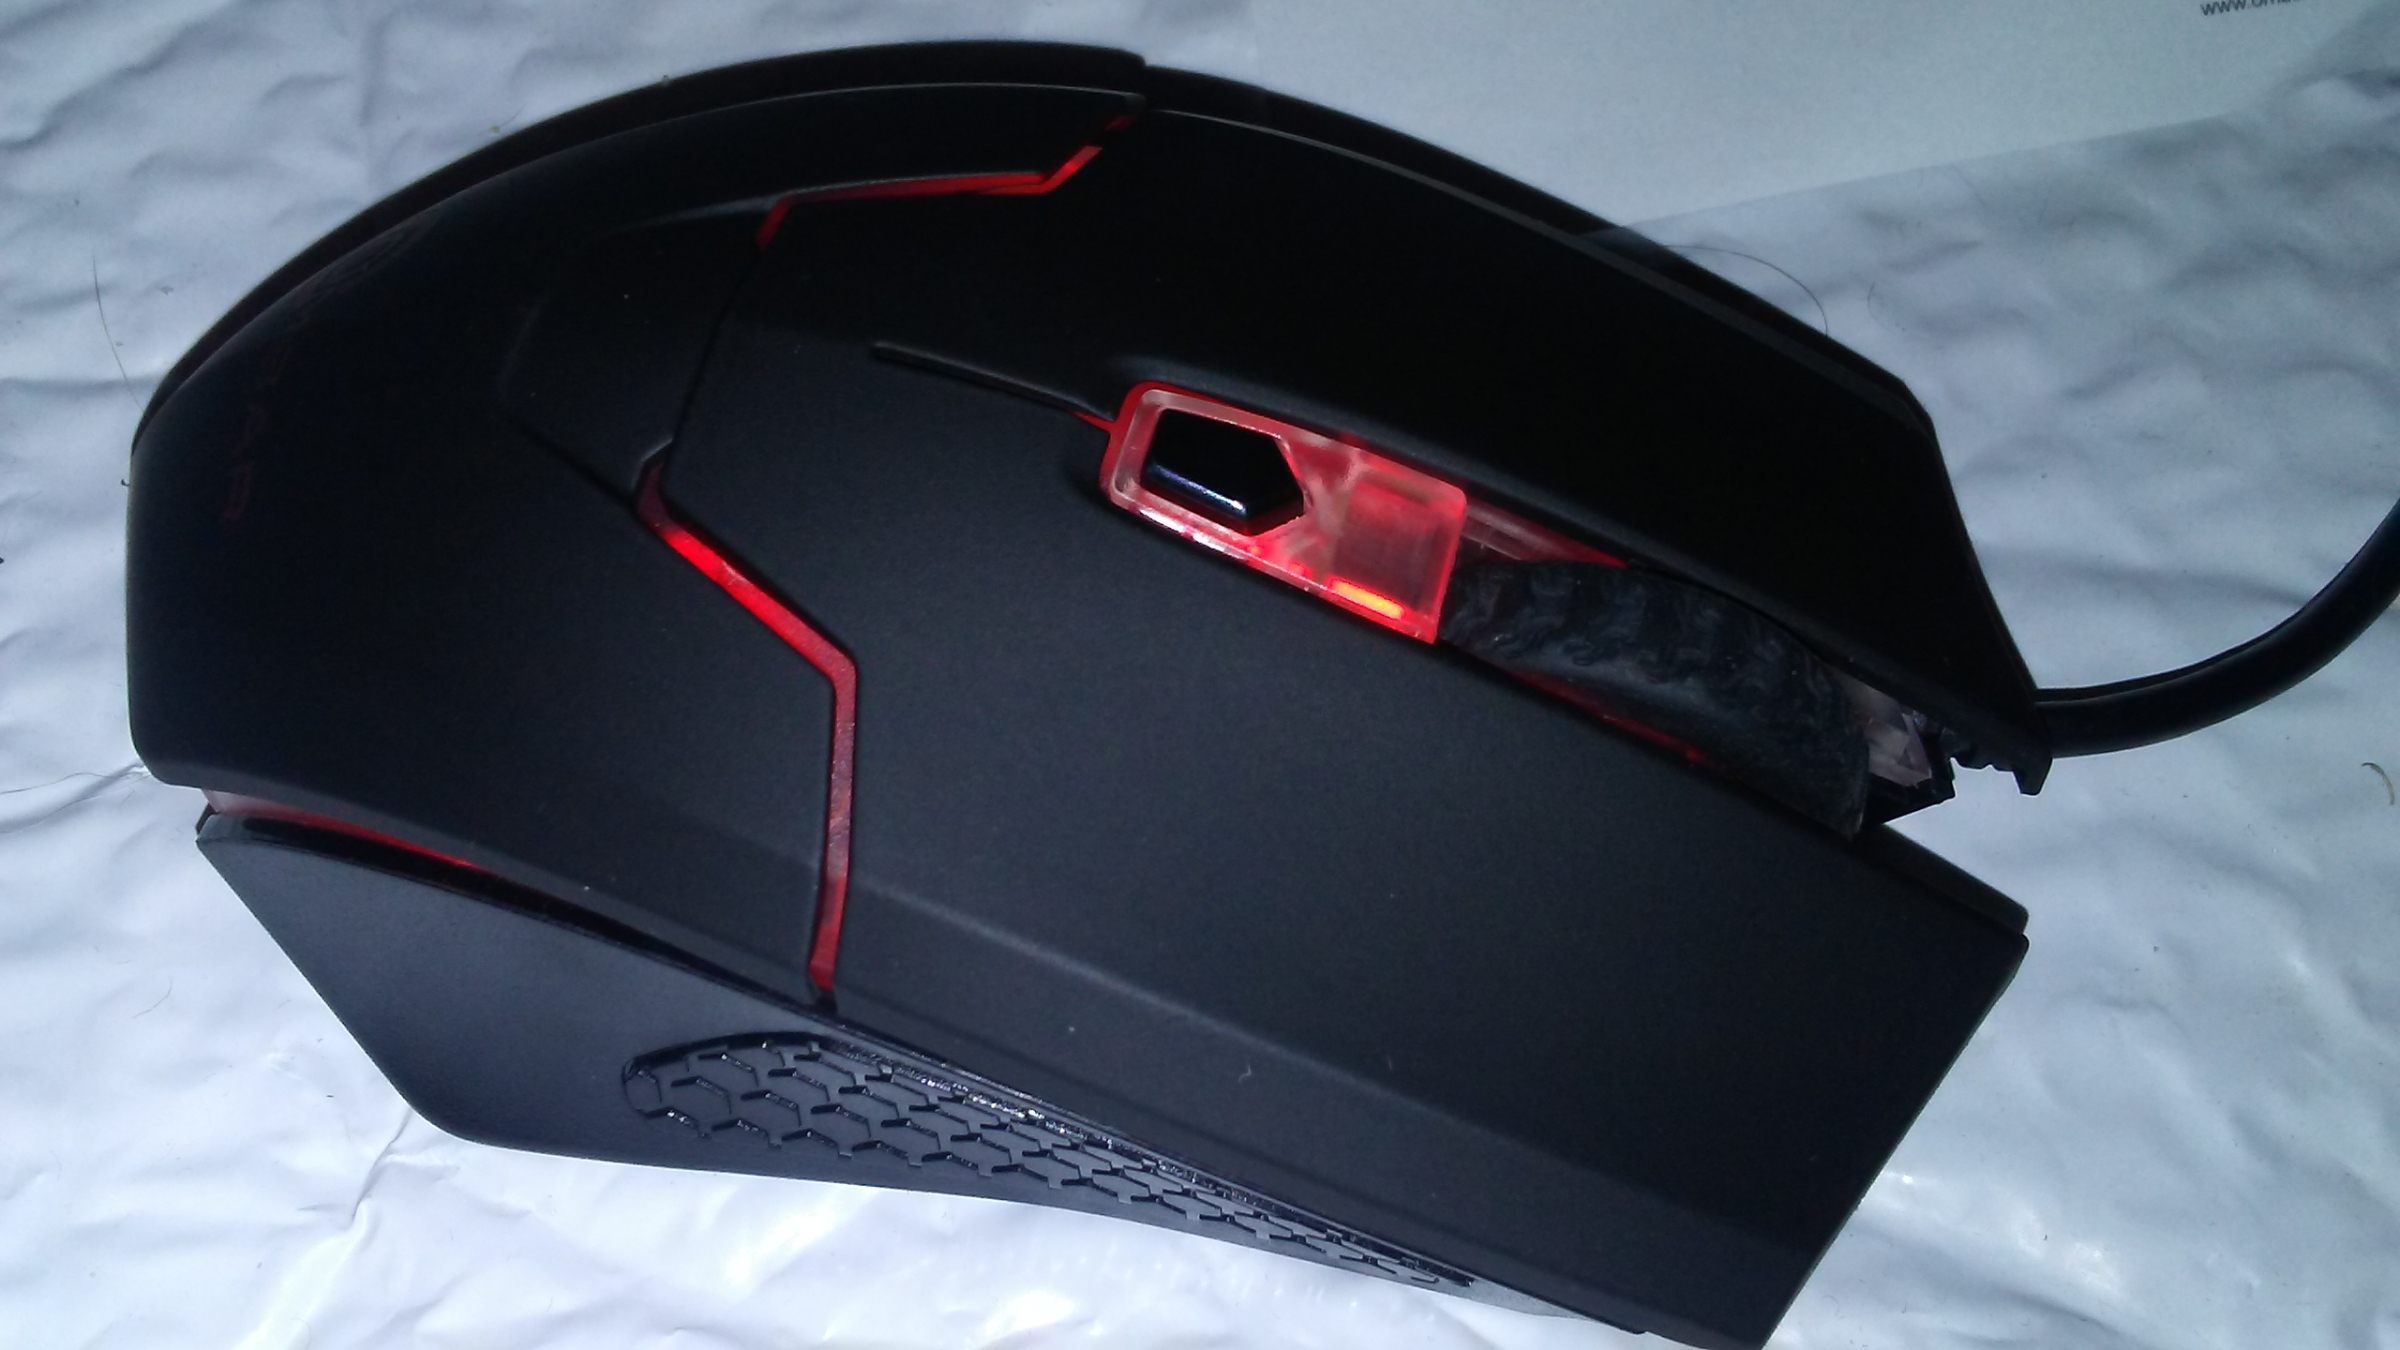 Nice Gaming Mouse for a Great Price